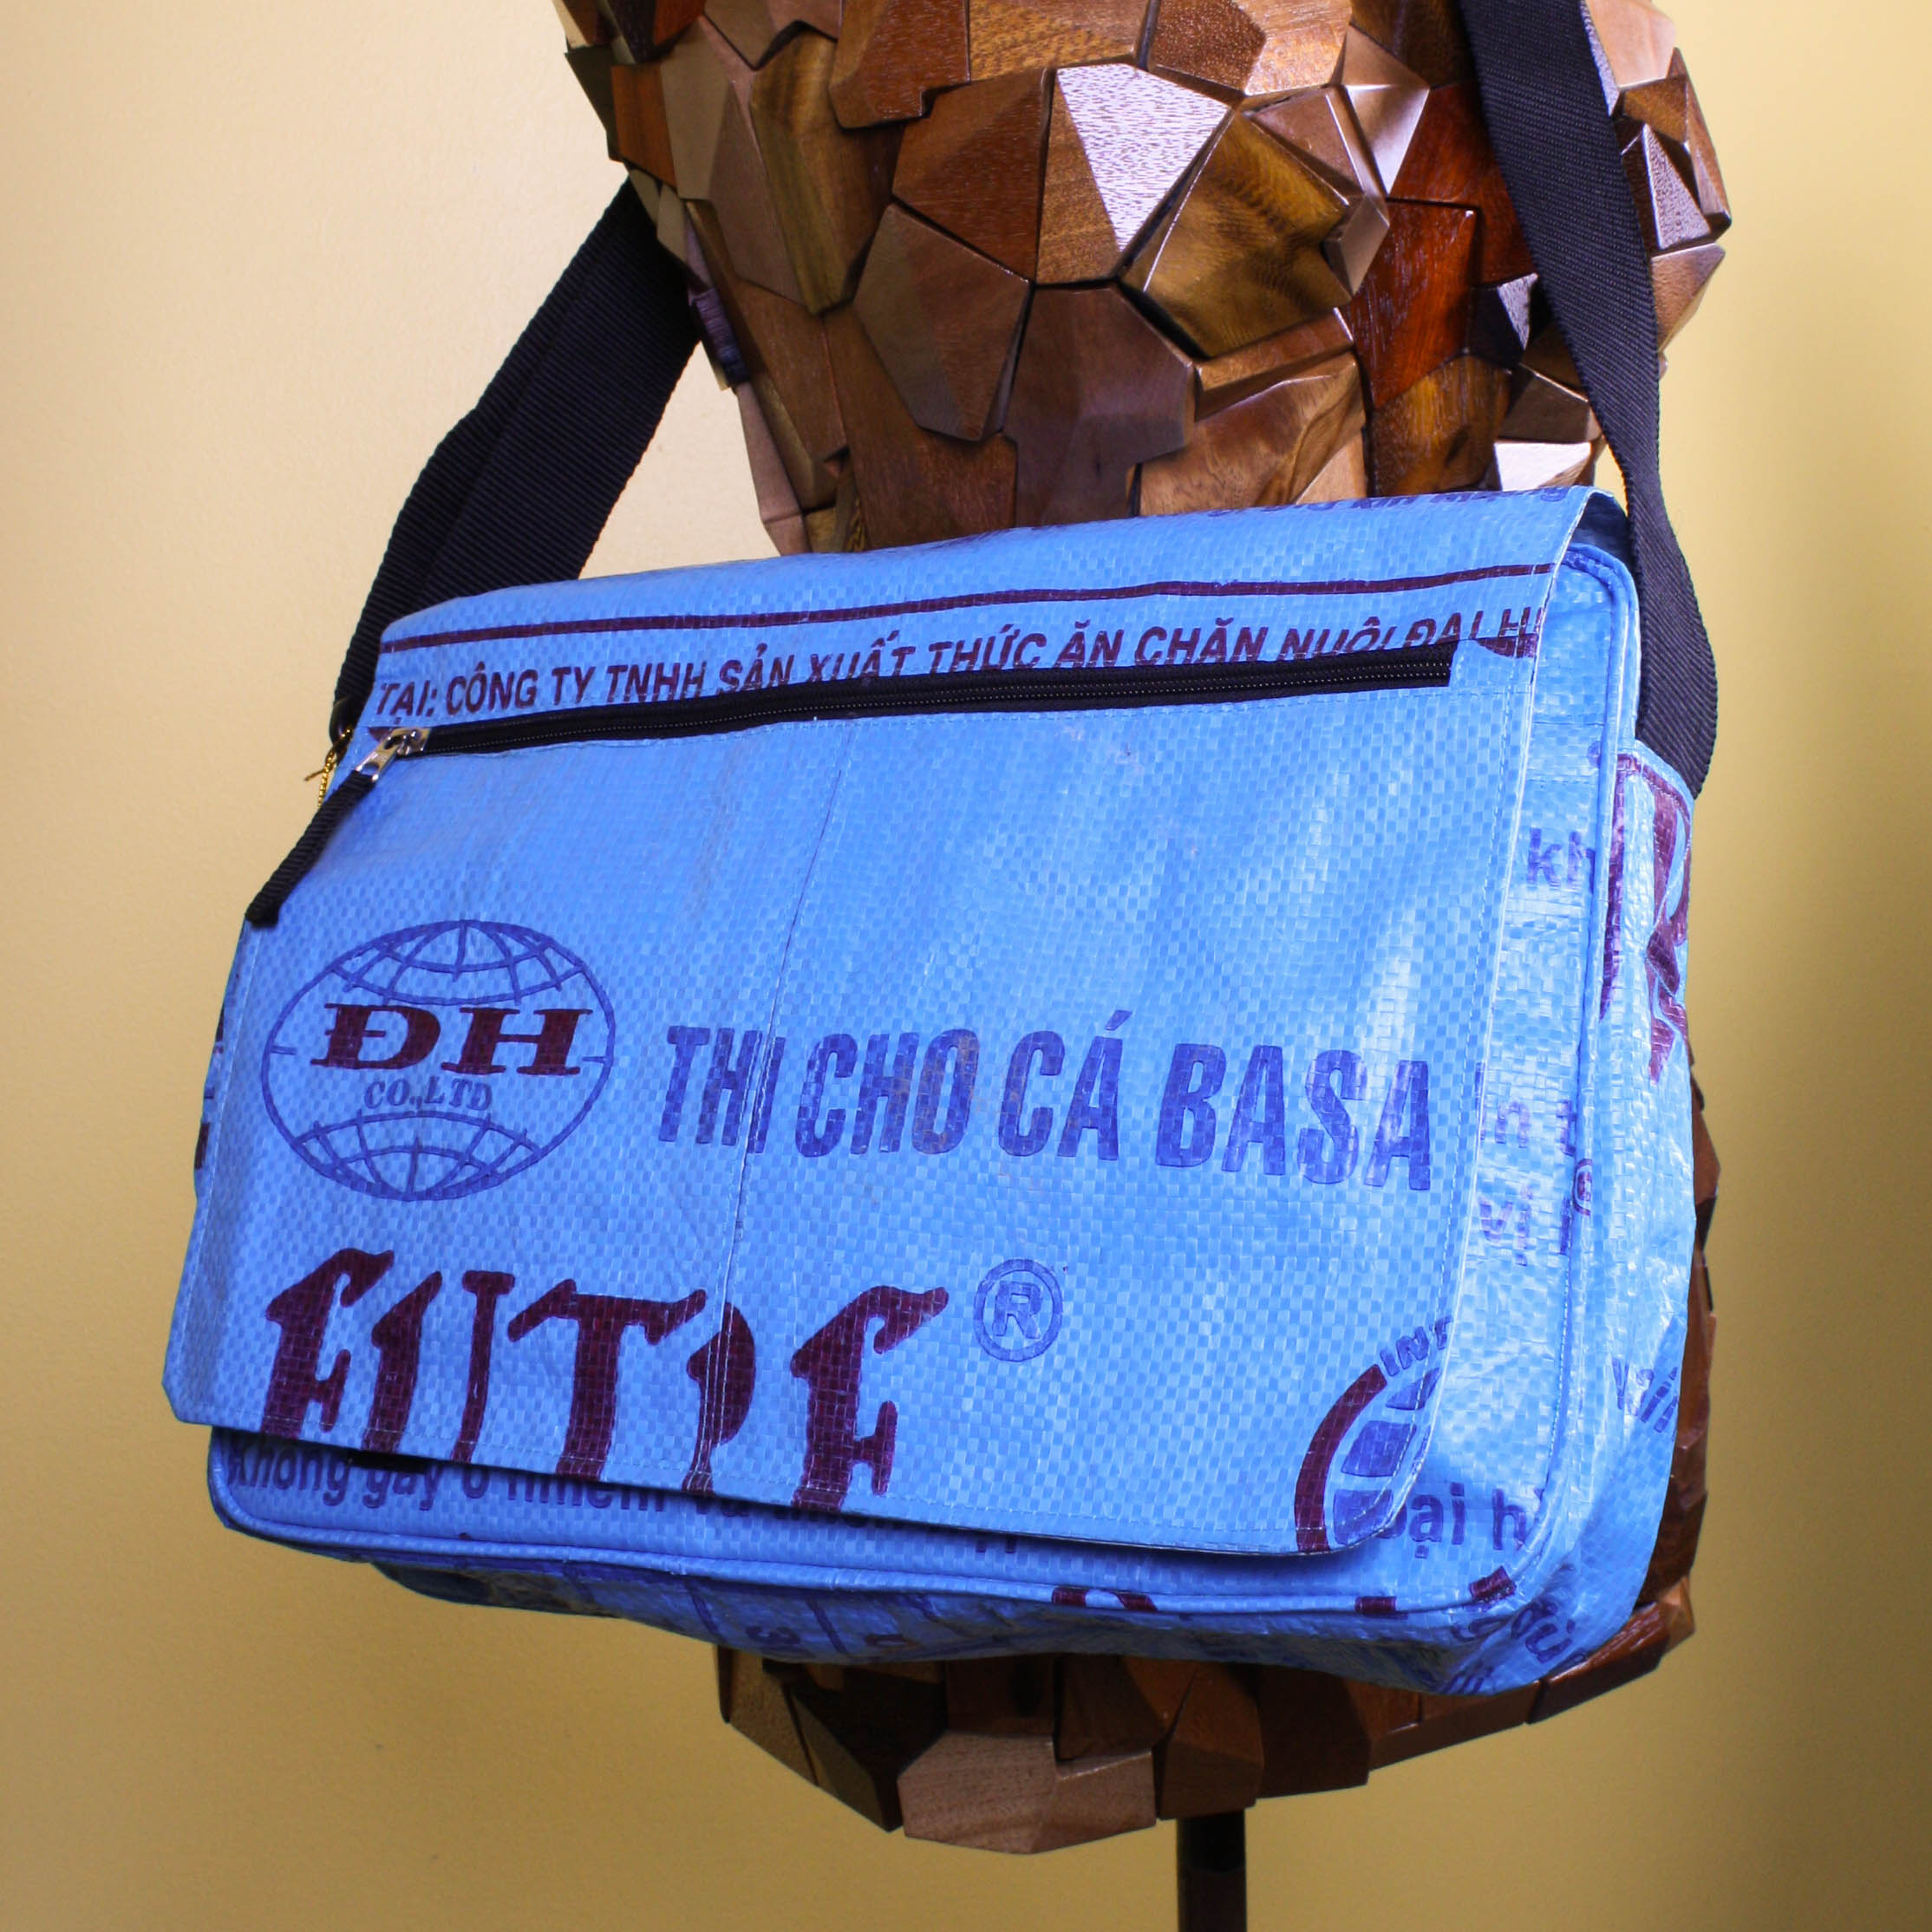 2602df830d9d Blue Recycled Messenger Bag   Handmade from Rice Bag – KAMBUJA FASHIONS